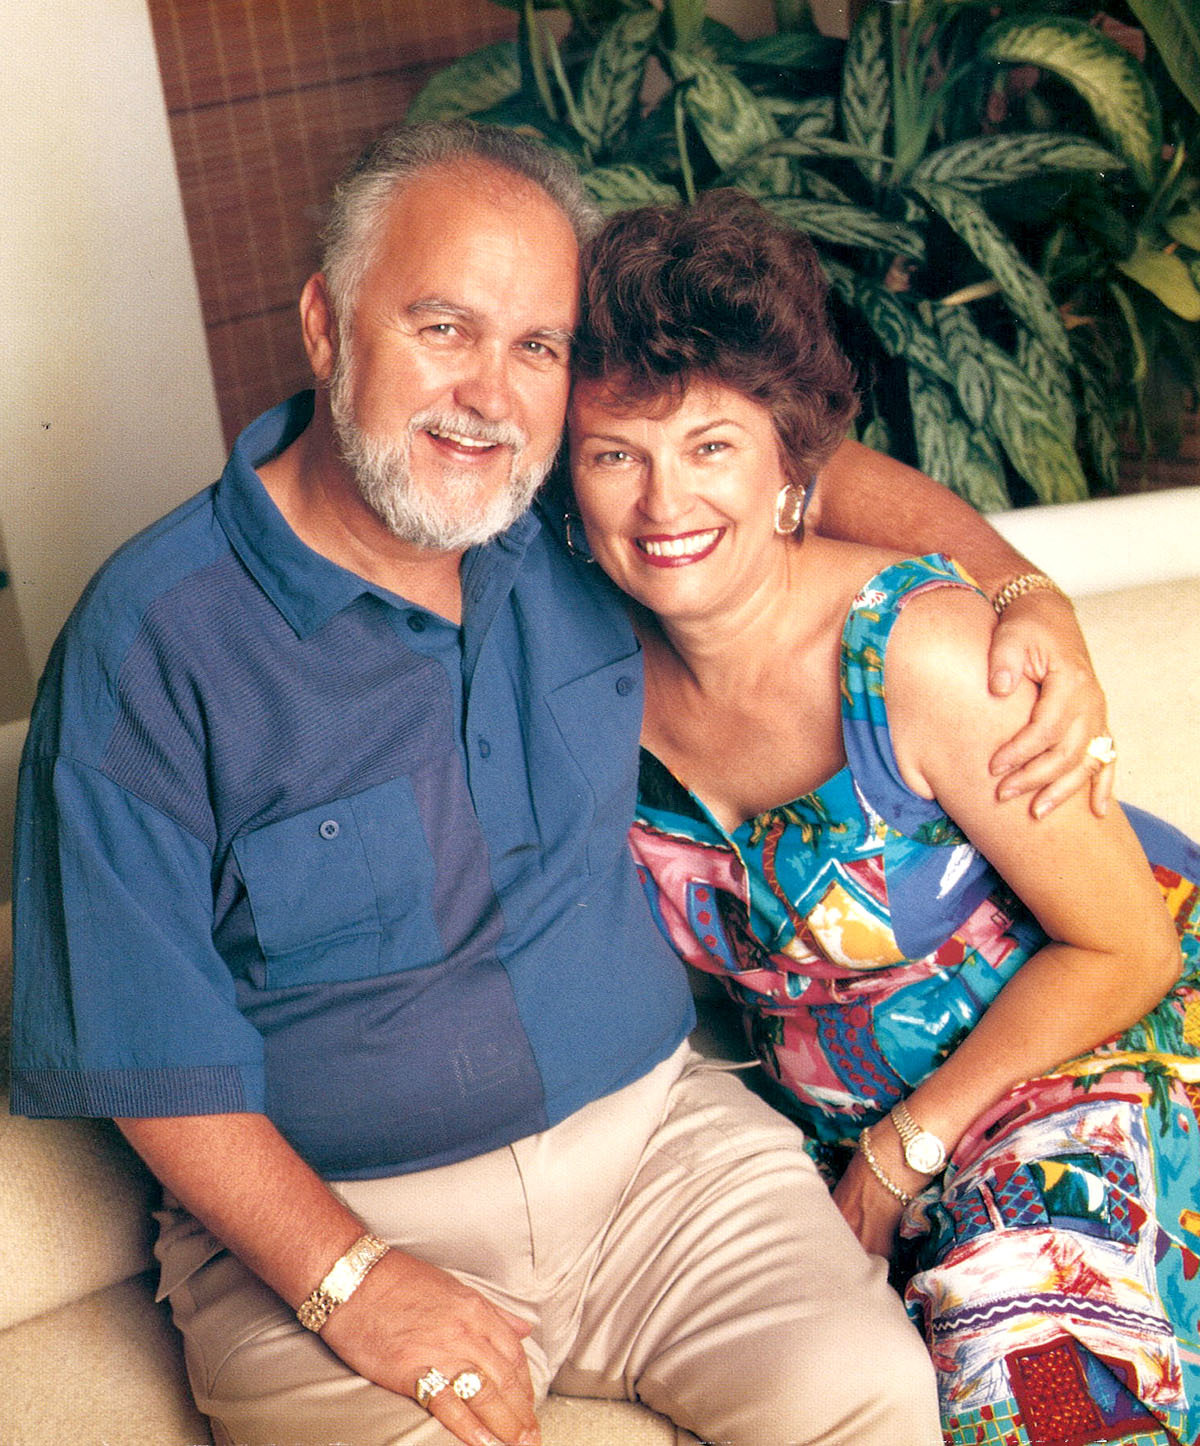 FORMER ROMANS — Dexter and Birdie Yager lived in Rome before moving to North Carolina in 1969.